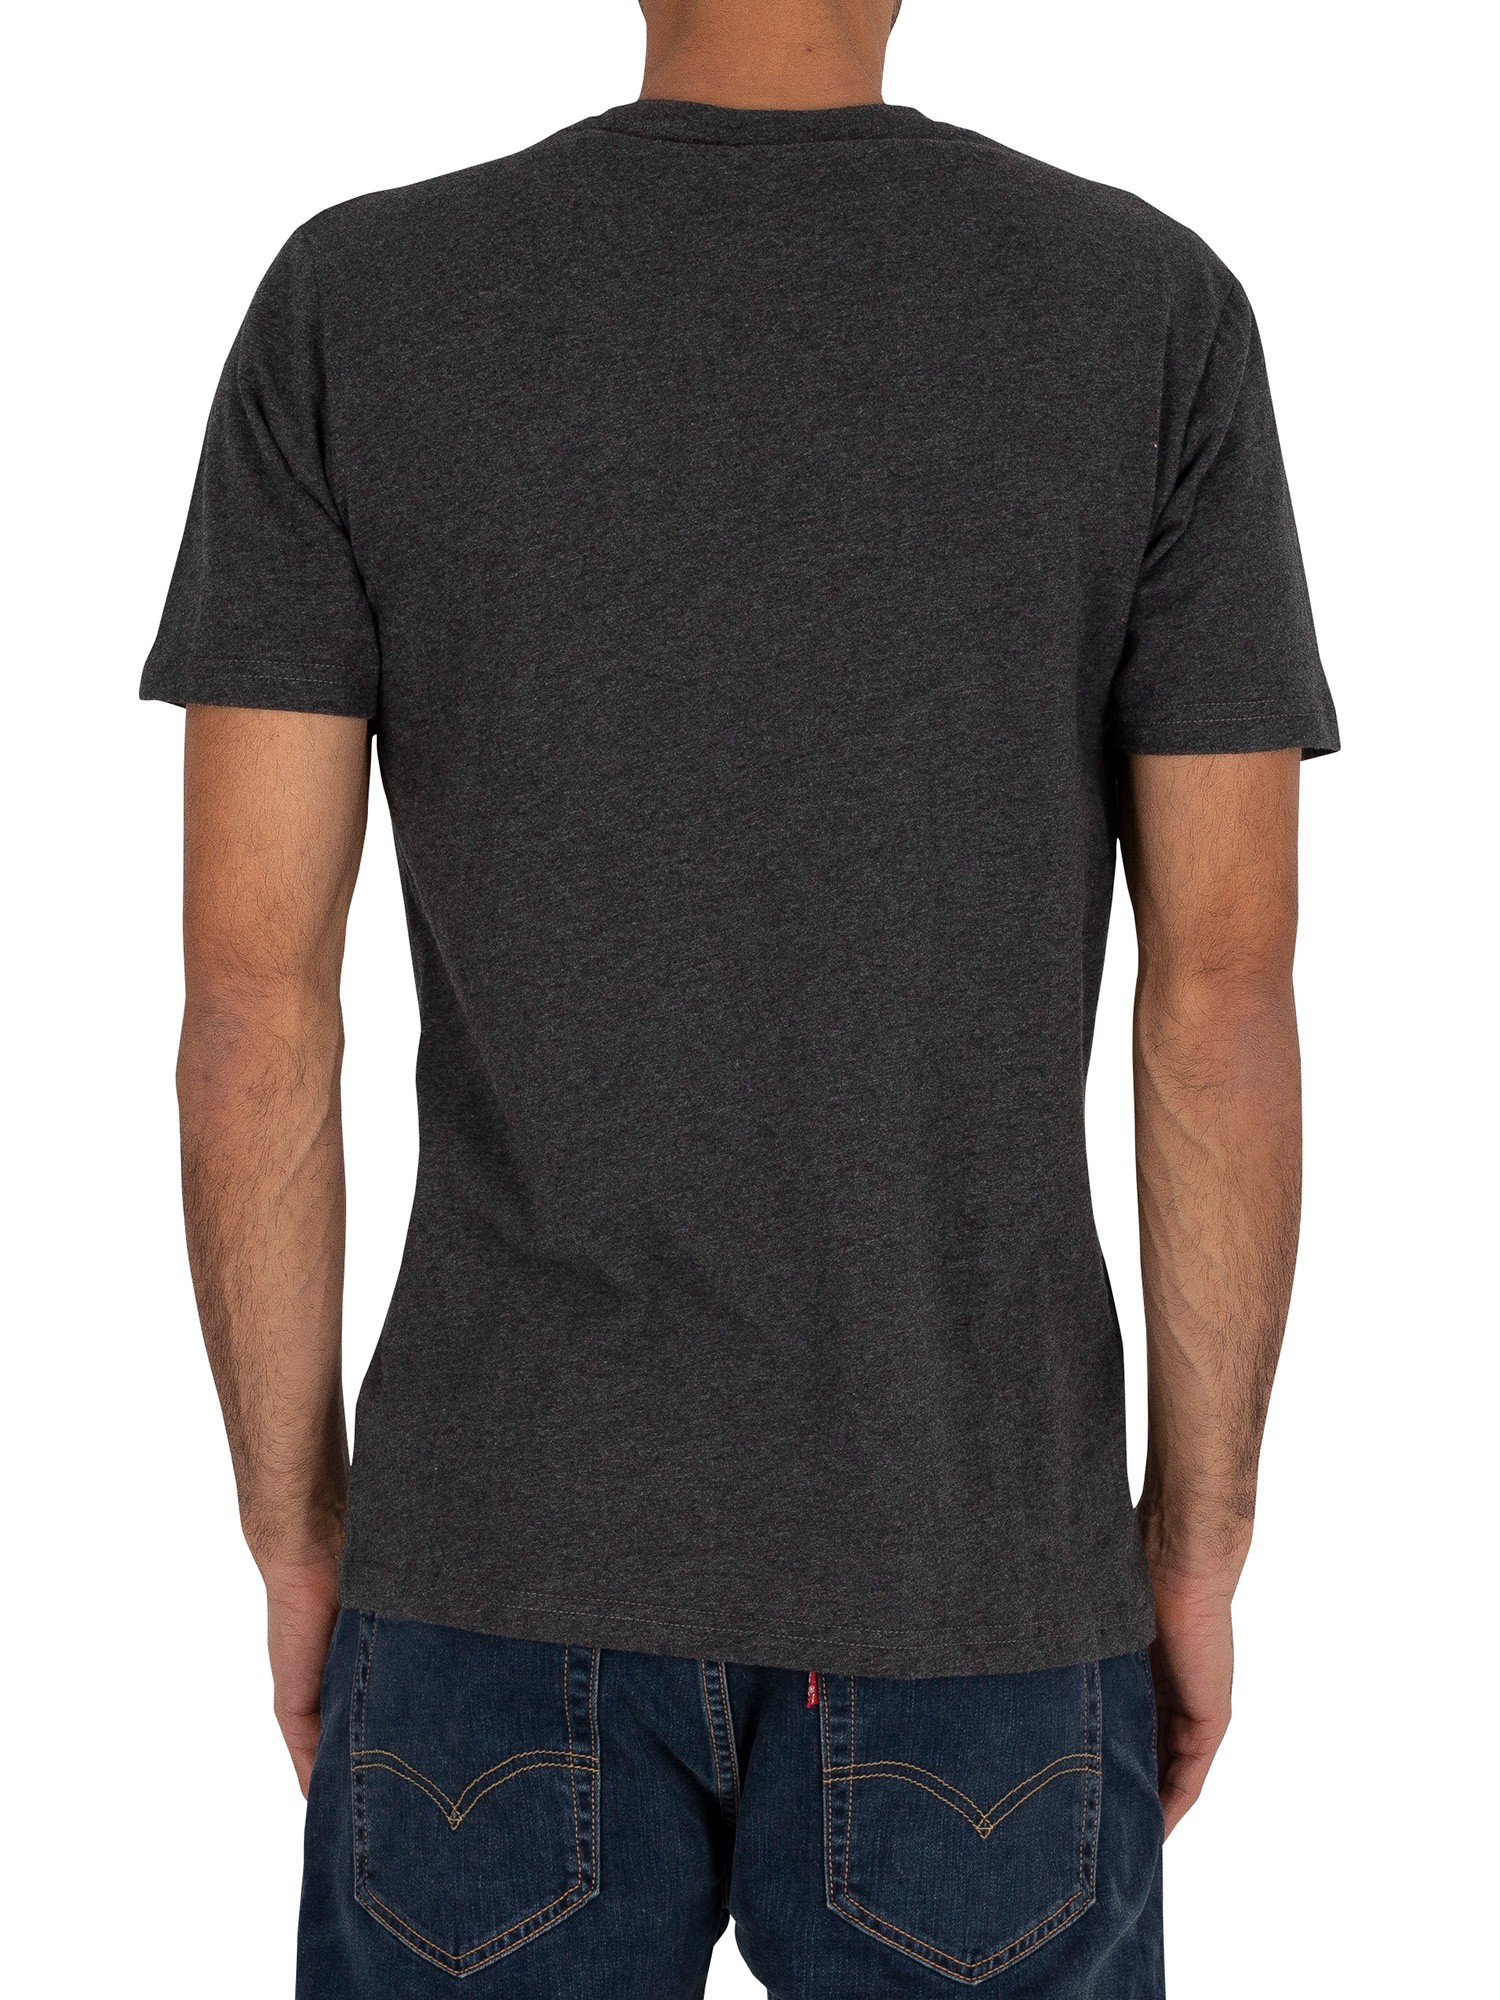 Ellesse Canaletto T-Shirt - Dark Grey Marl